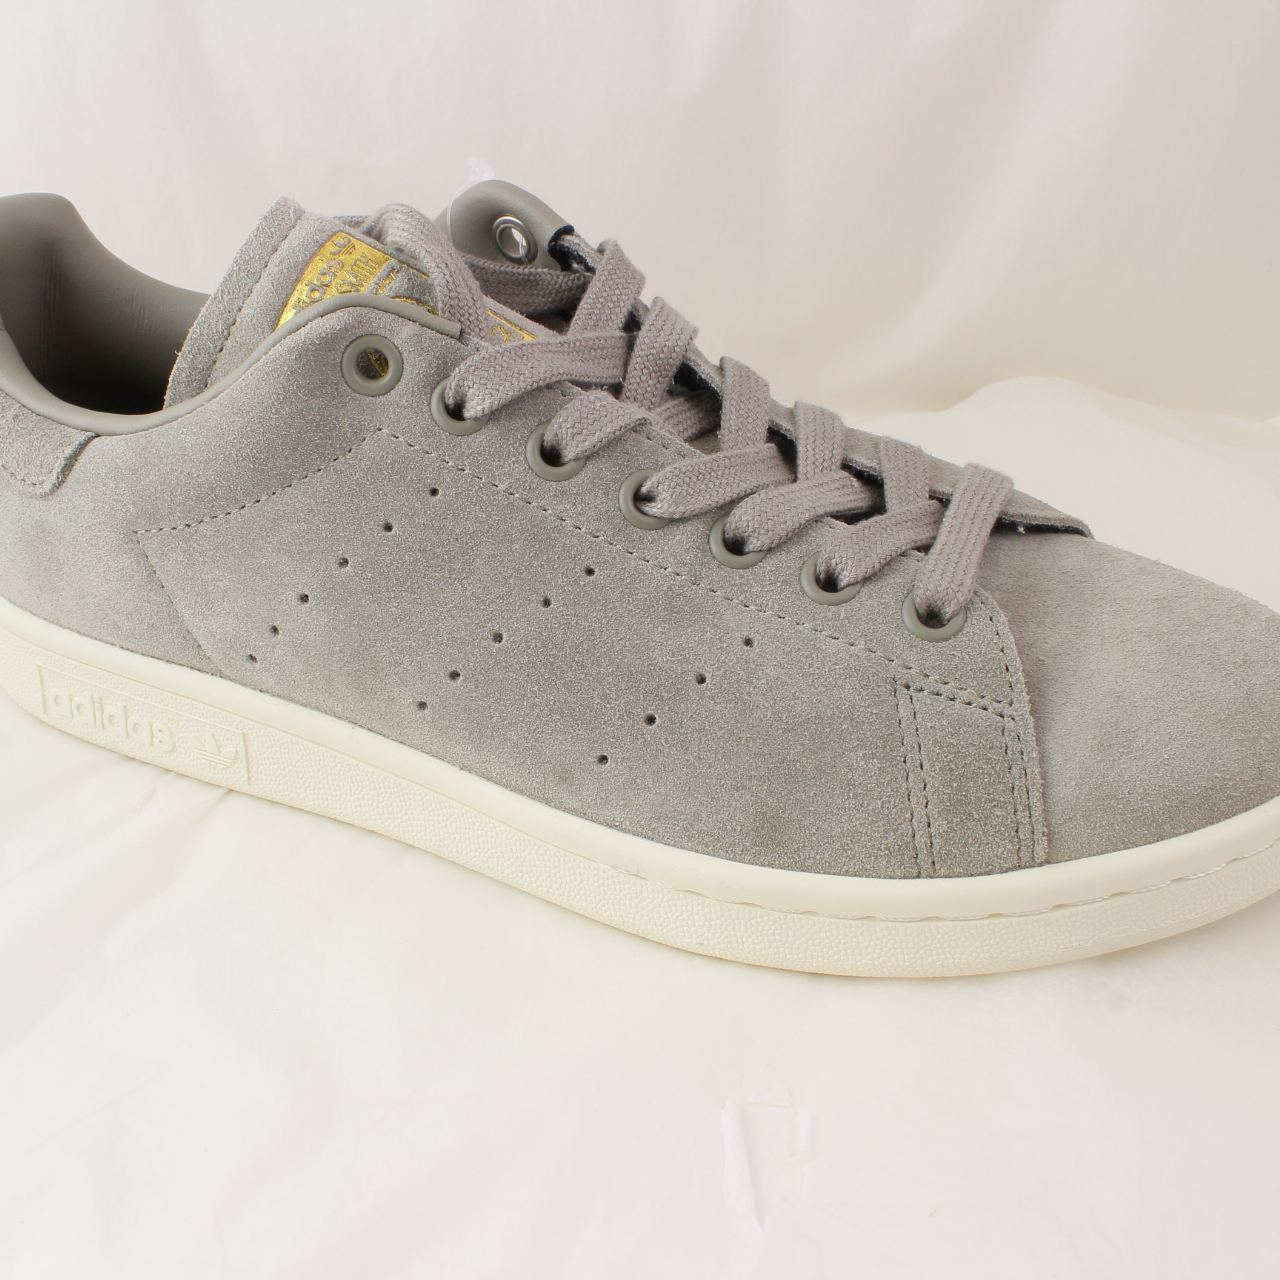 buy popular 13bfb 84943 Sentinel Mens Adidas Grey Suede Lace Up Trainers Size UK 7  Ex-Display